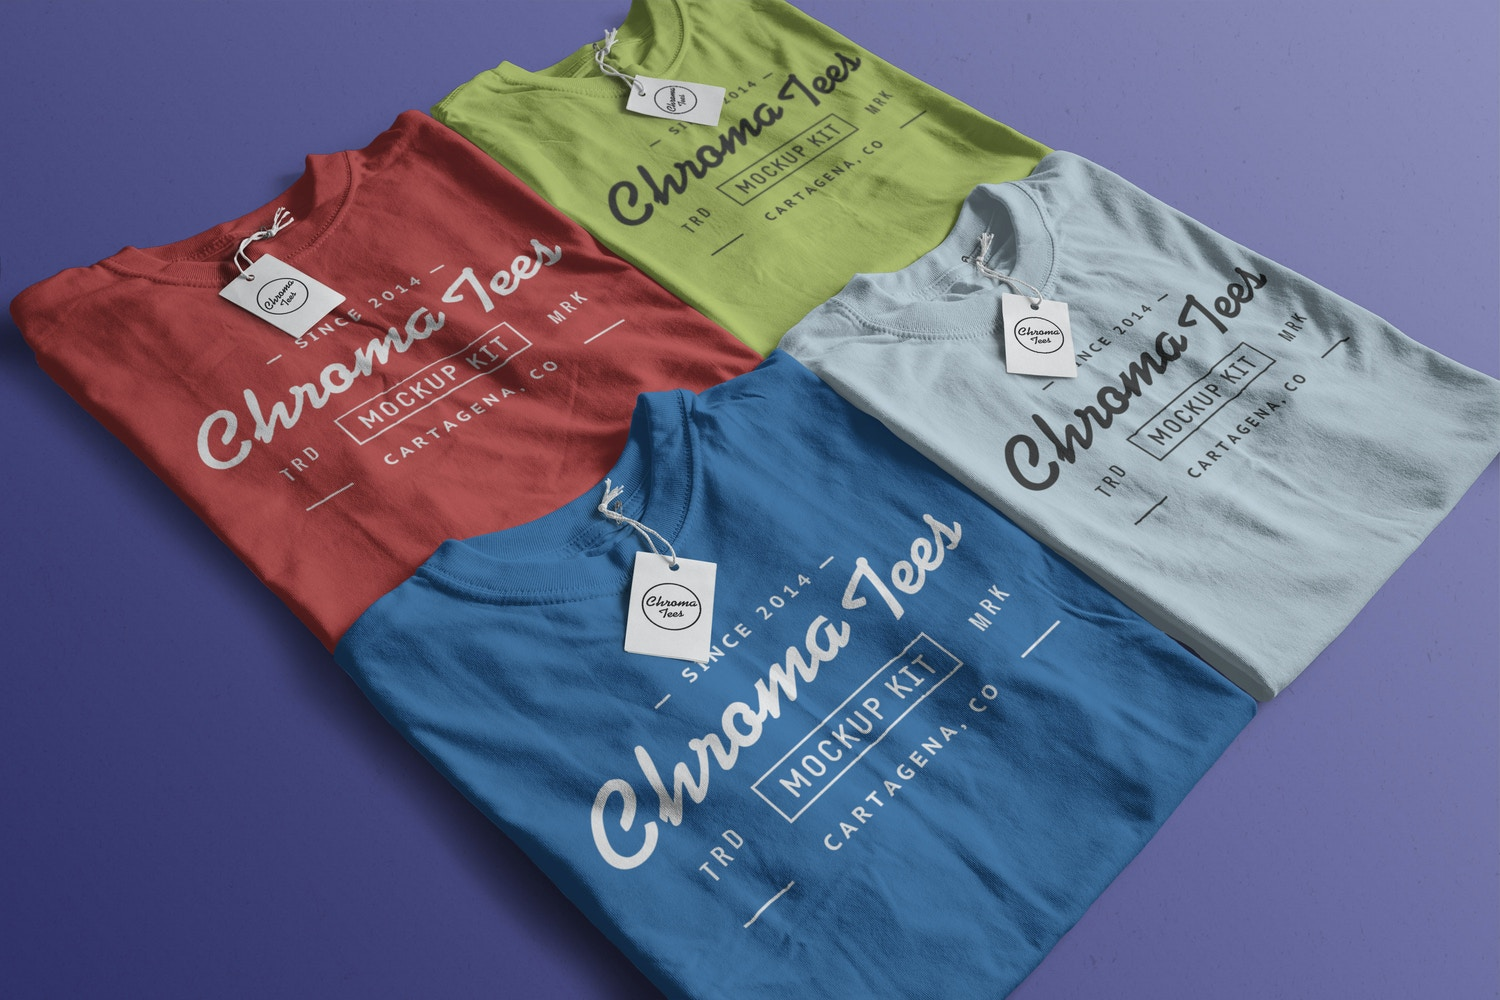 Folded T-Shirts Mockup 04 by Antonio Padilla on Original Mockups